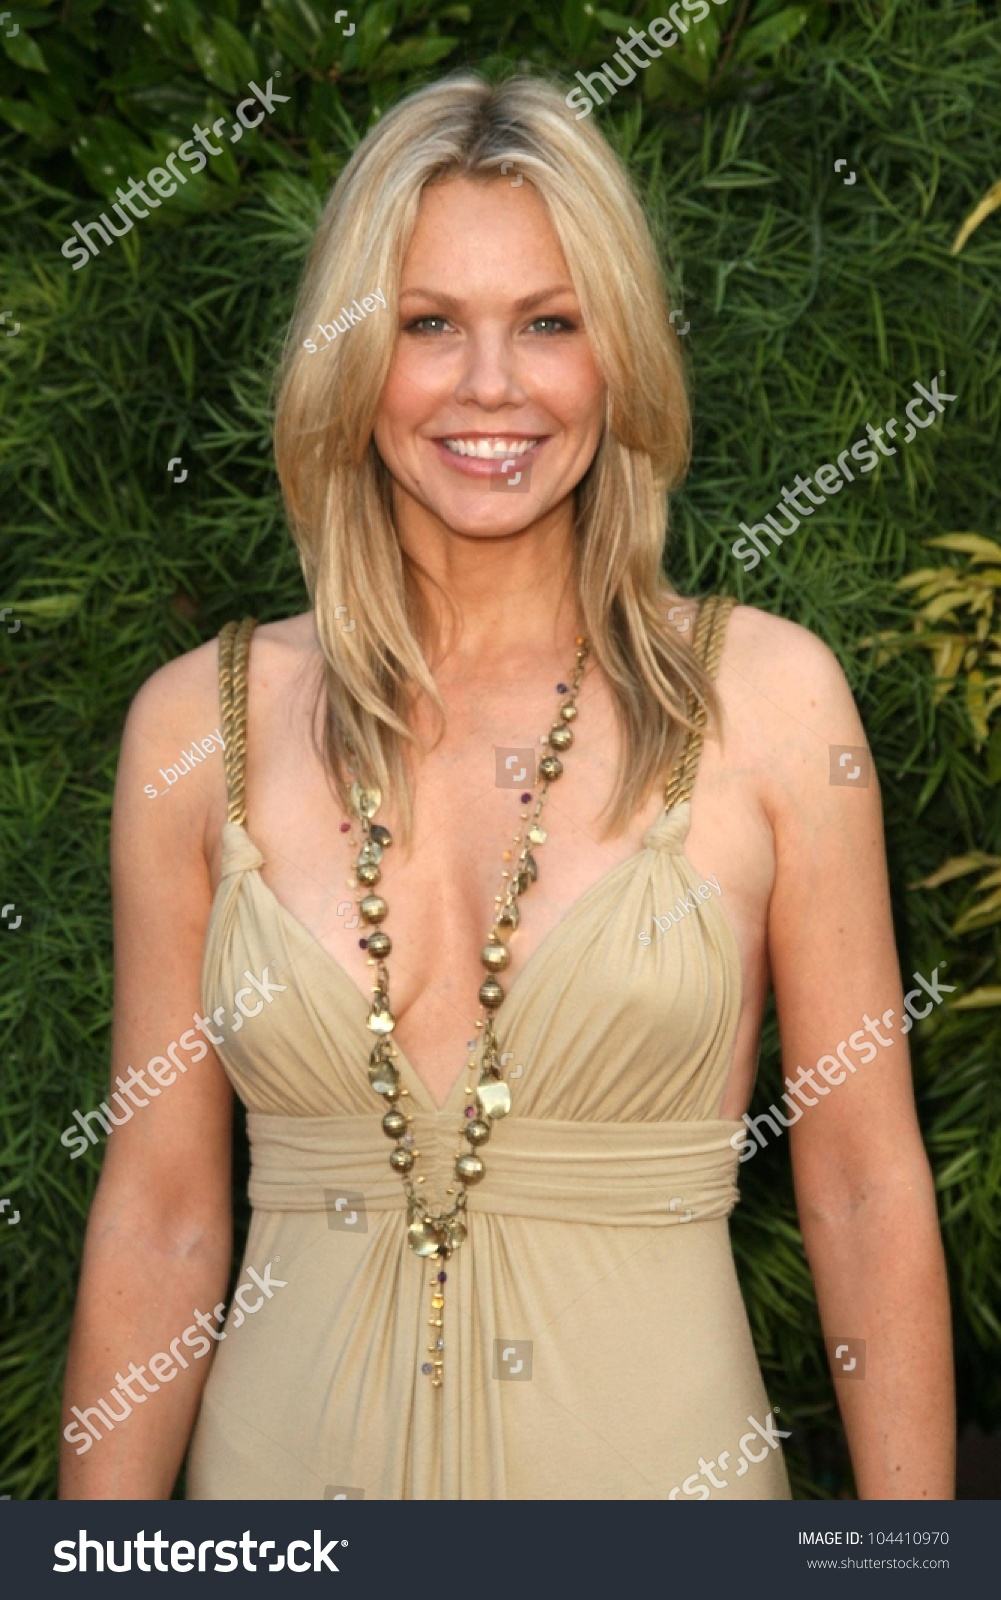 Andrea Roth Andrea Roth new picture